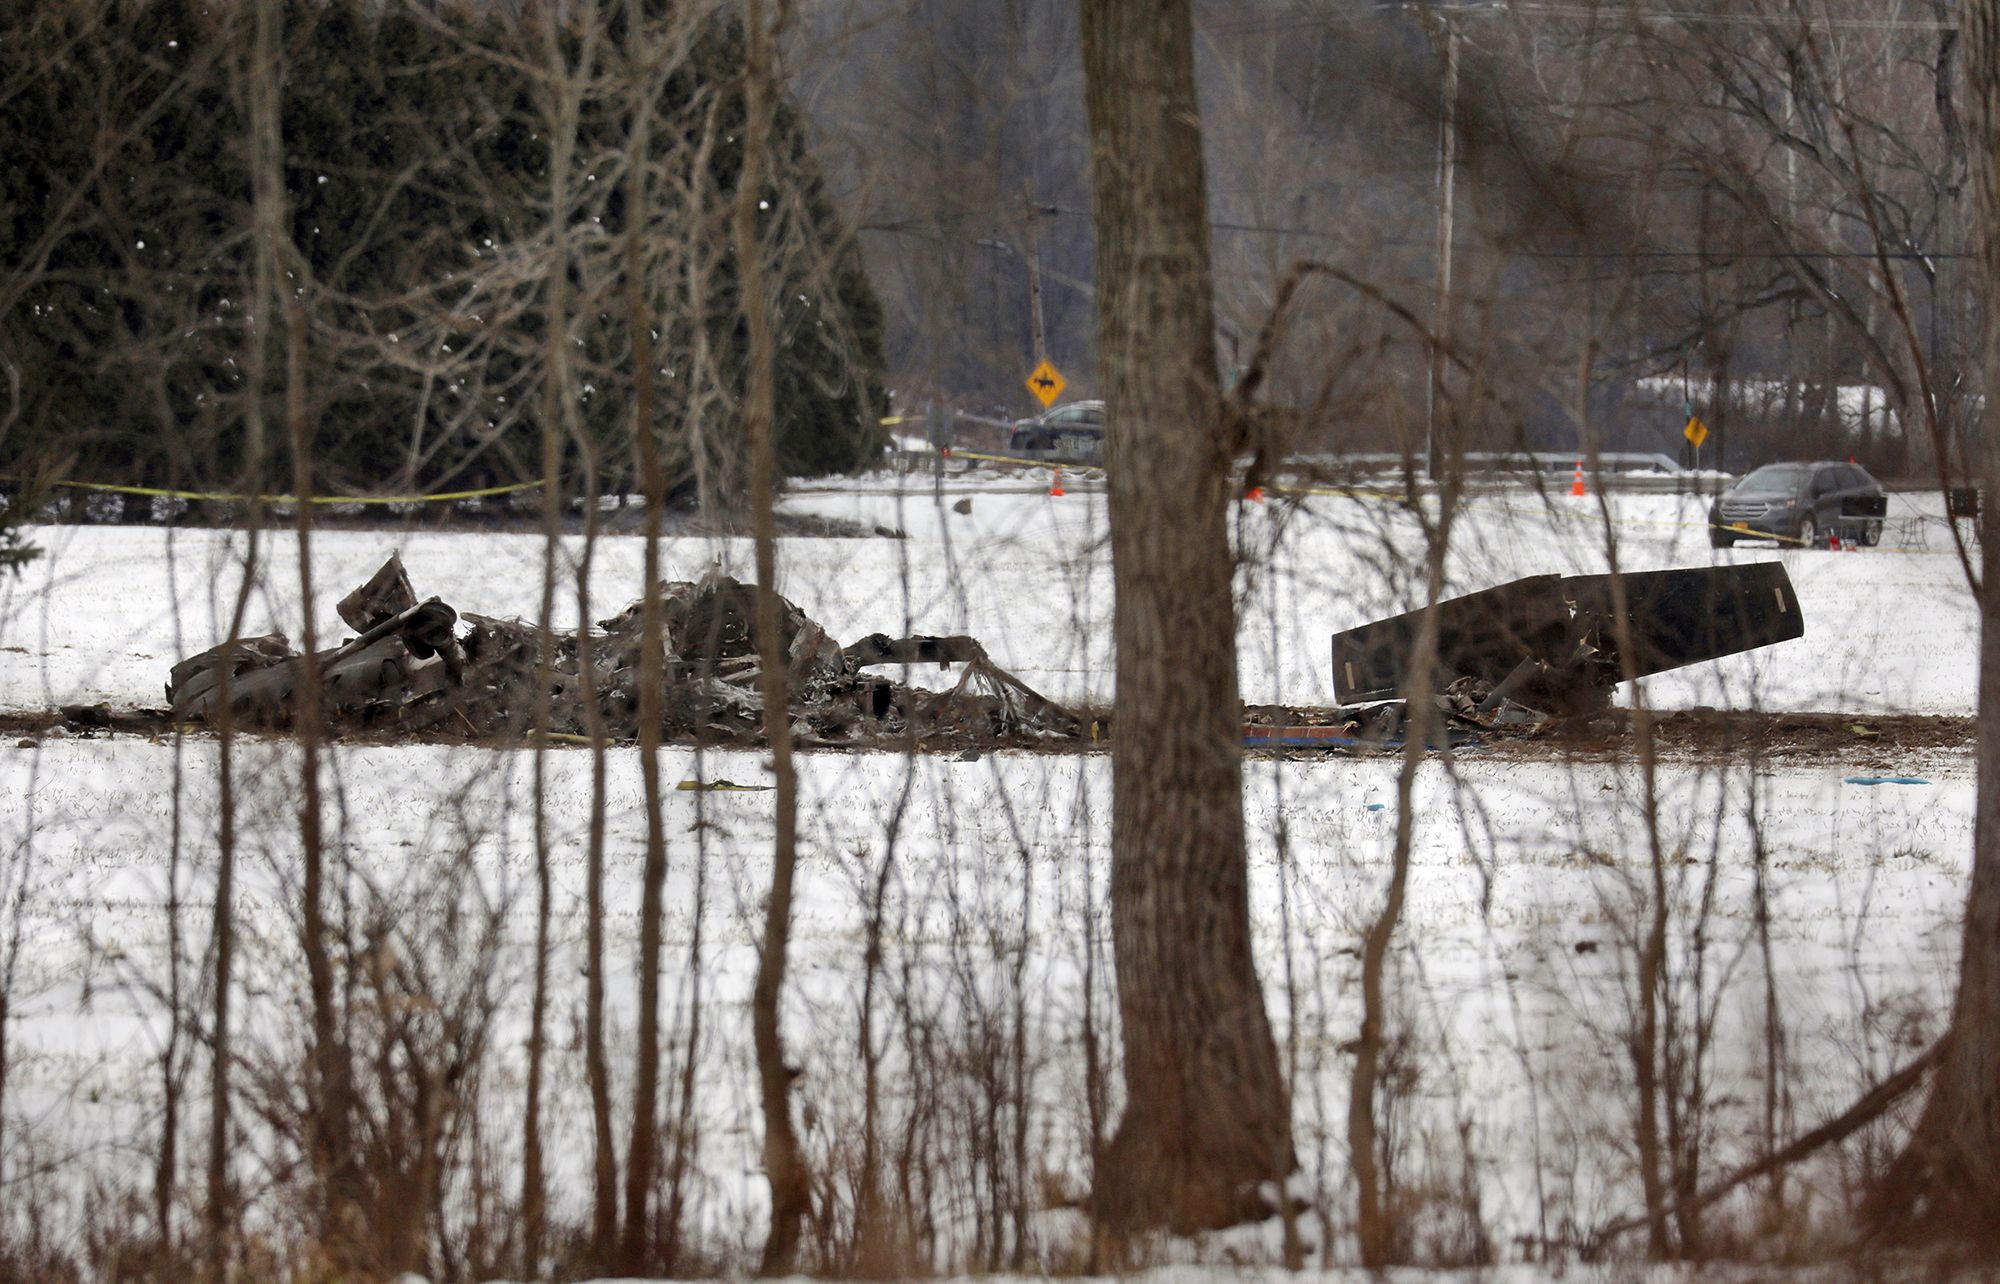 Remains of 3 National Guardsmen killed in NY helicopter crash recovered